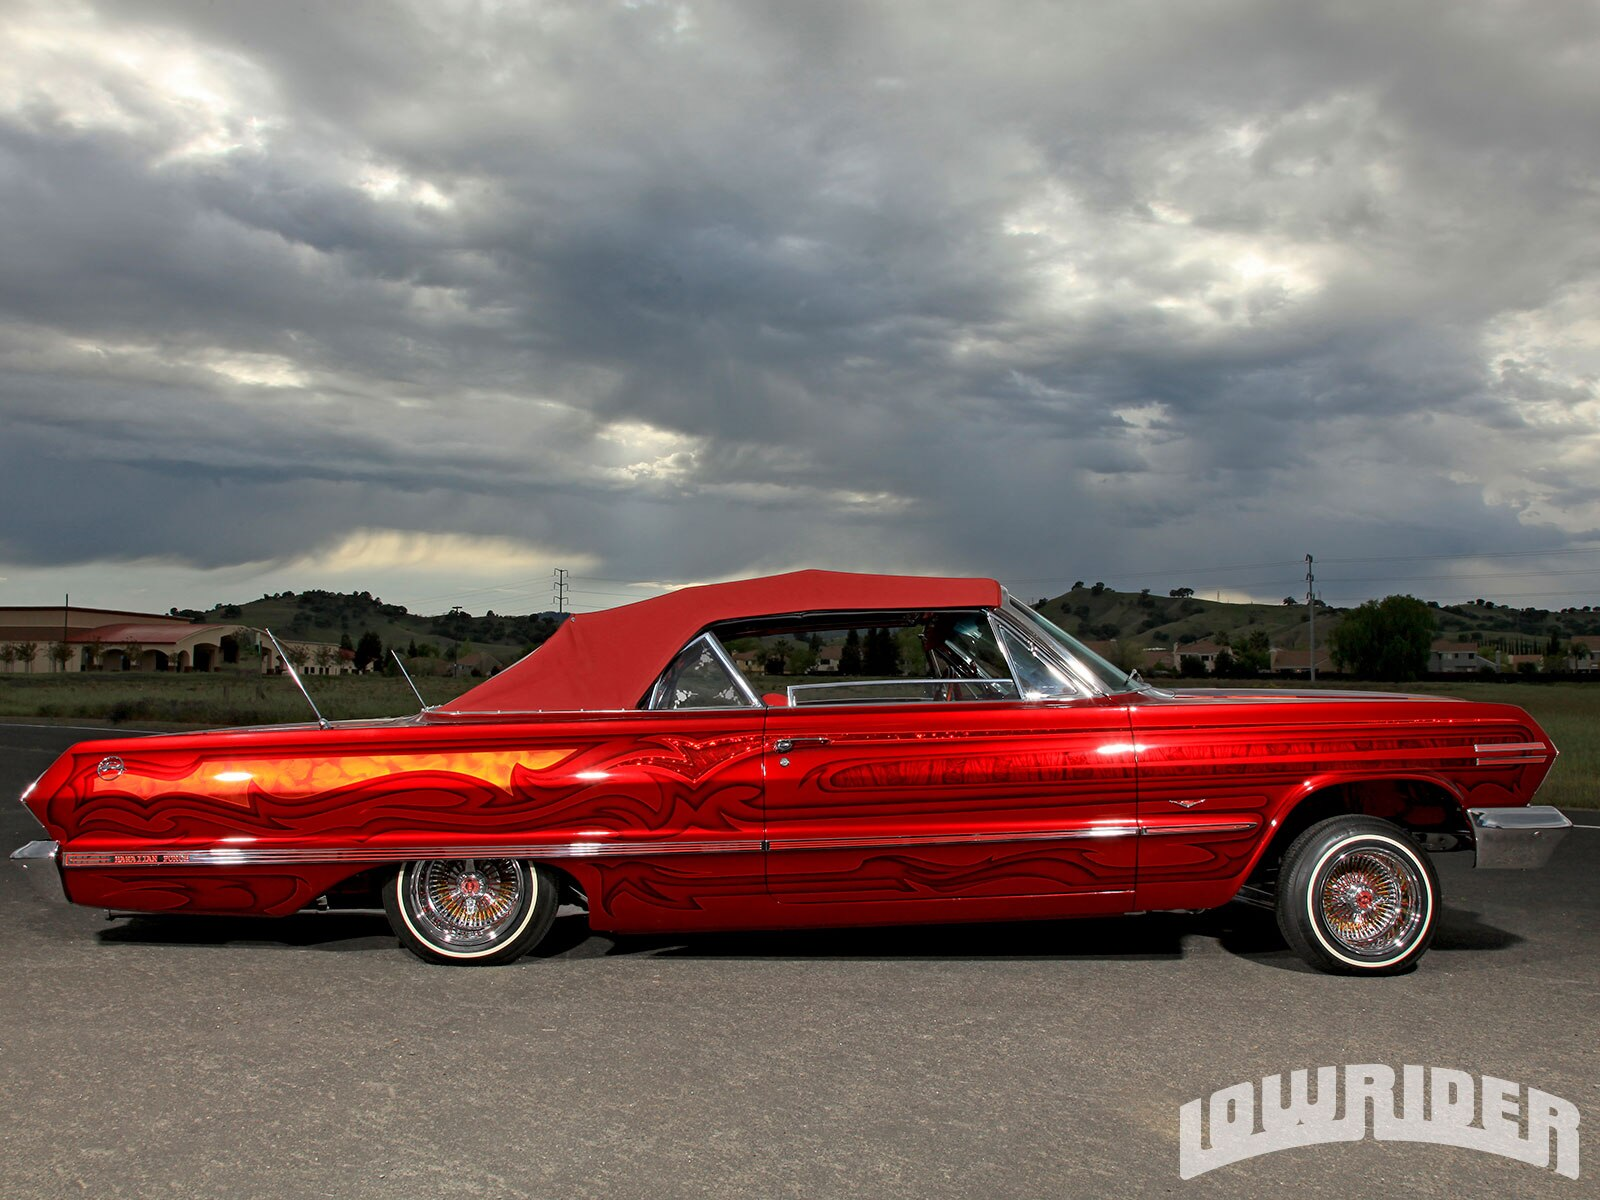 Lowrider Car Hd Wallpaper 1963 Chevrolet Impala Lowrider Magazine